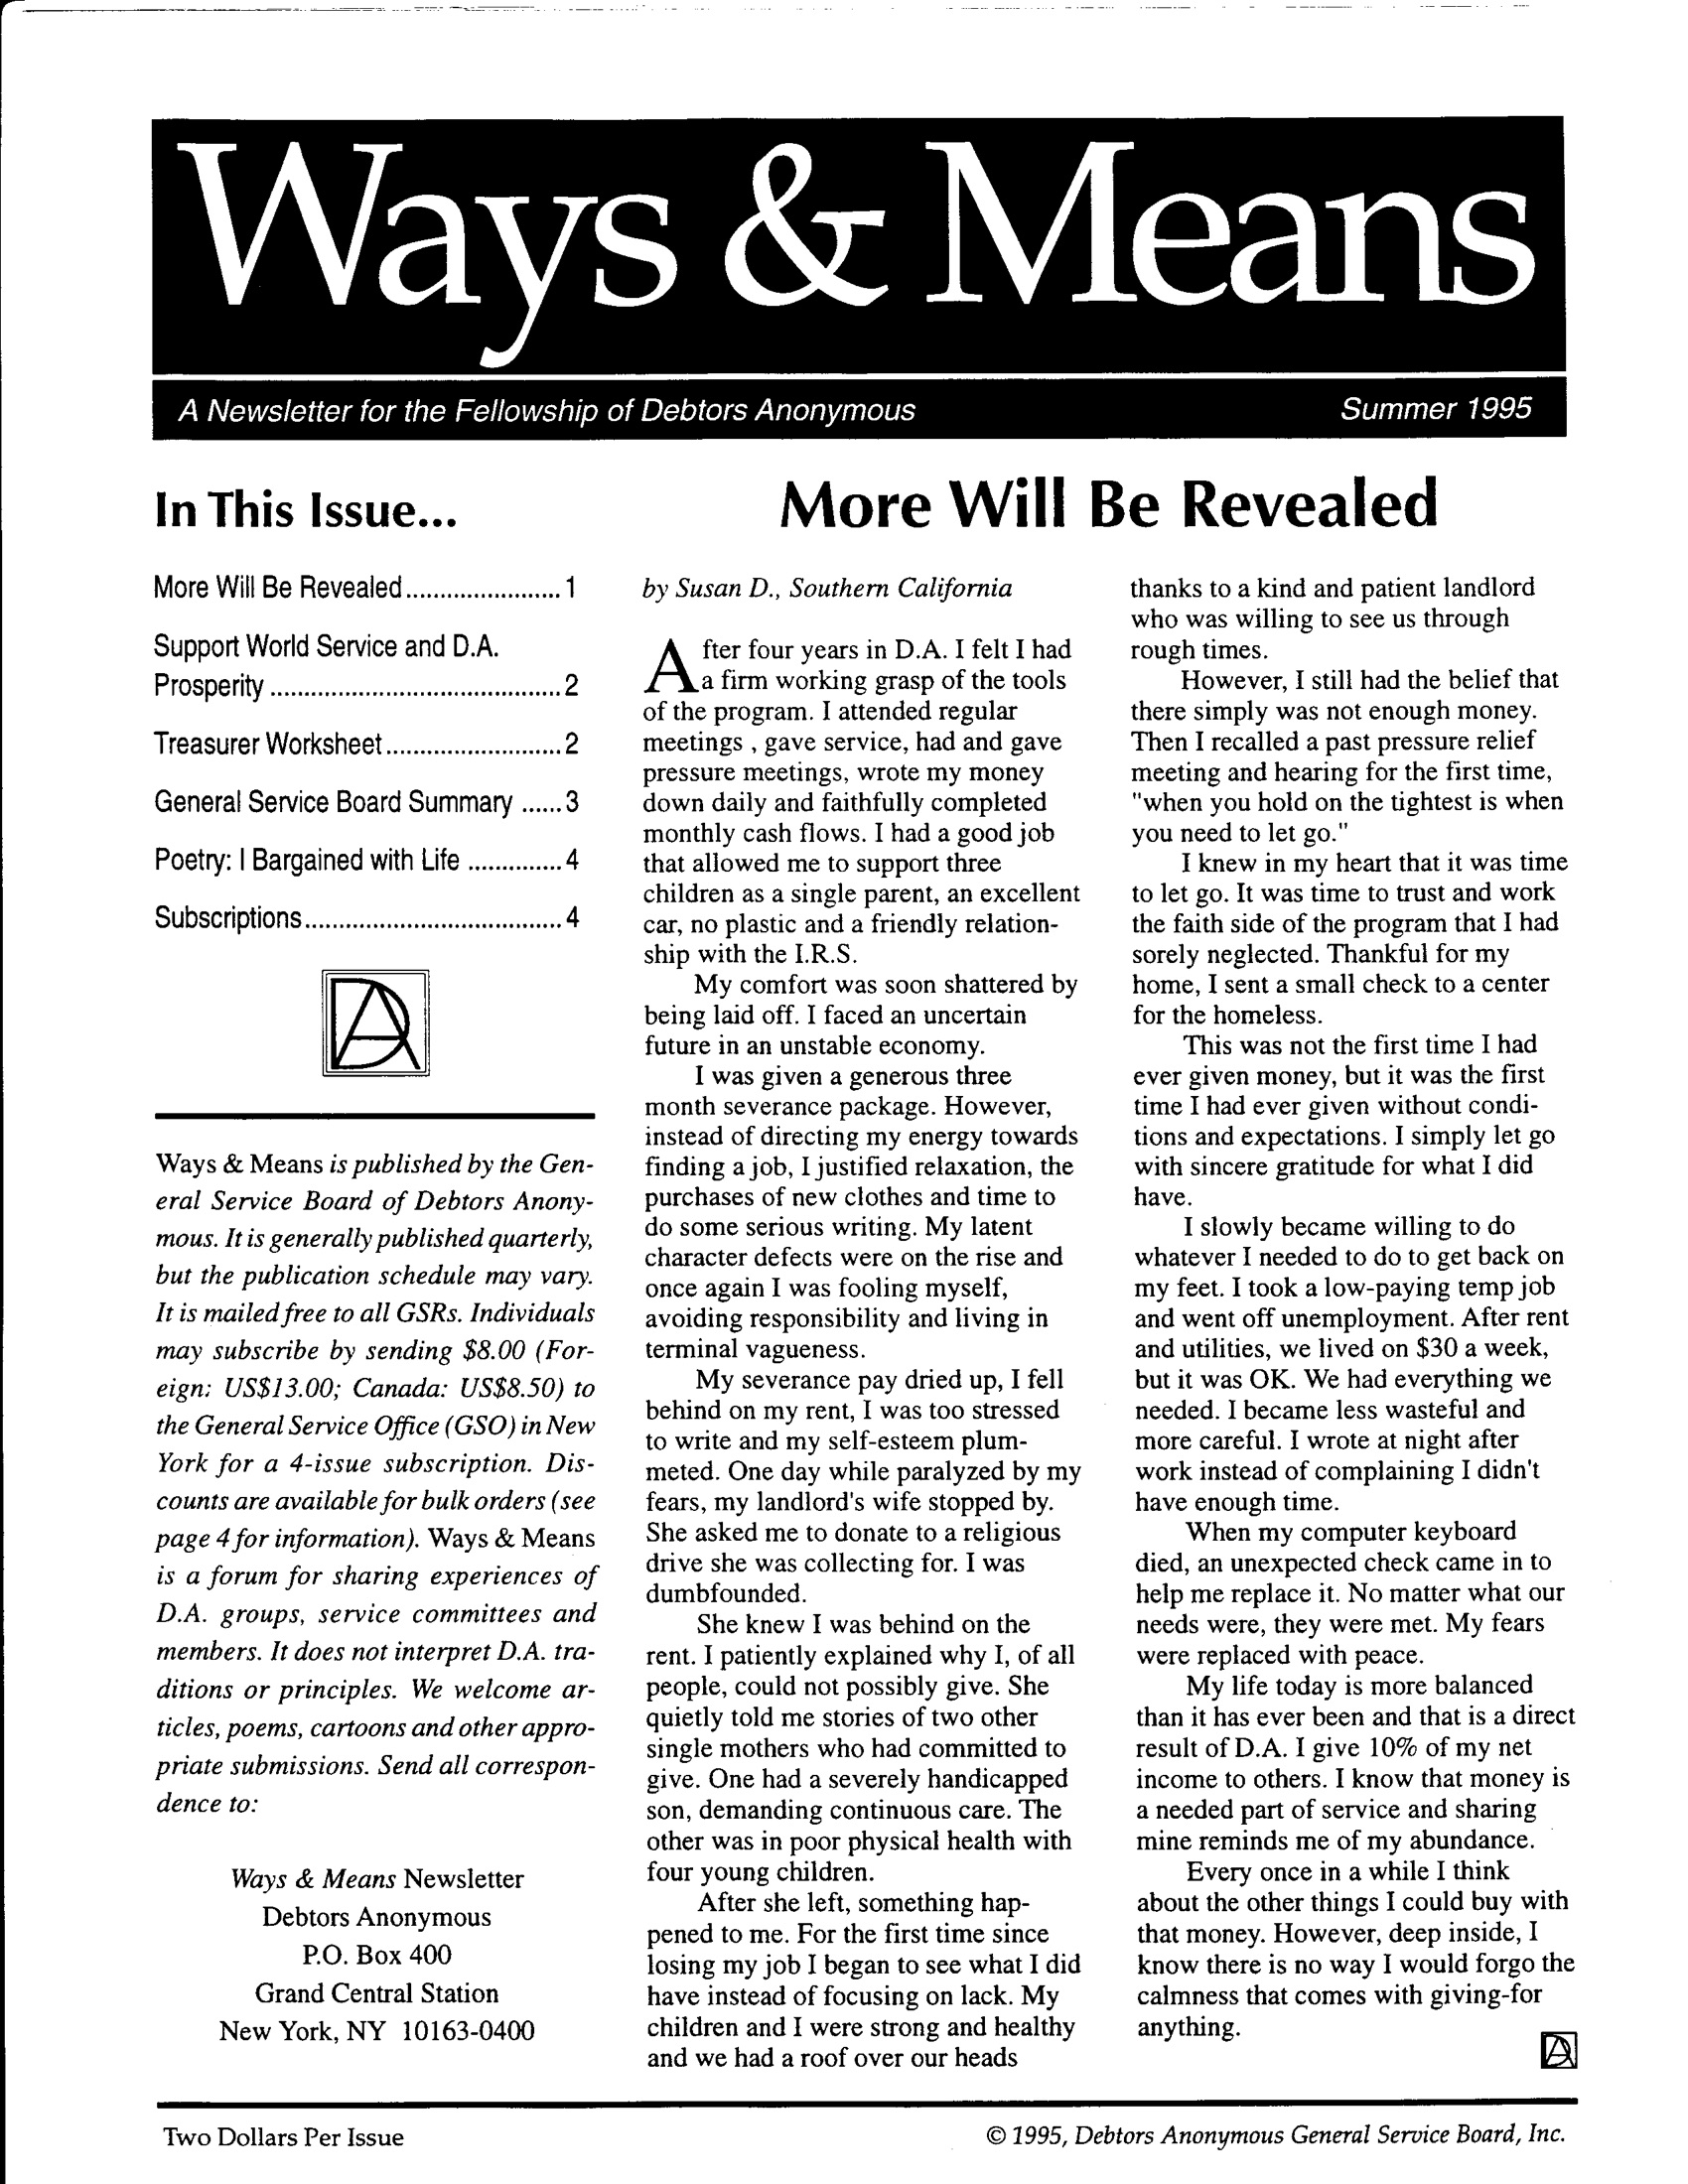 Ways & Means 3rd QTR 1995